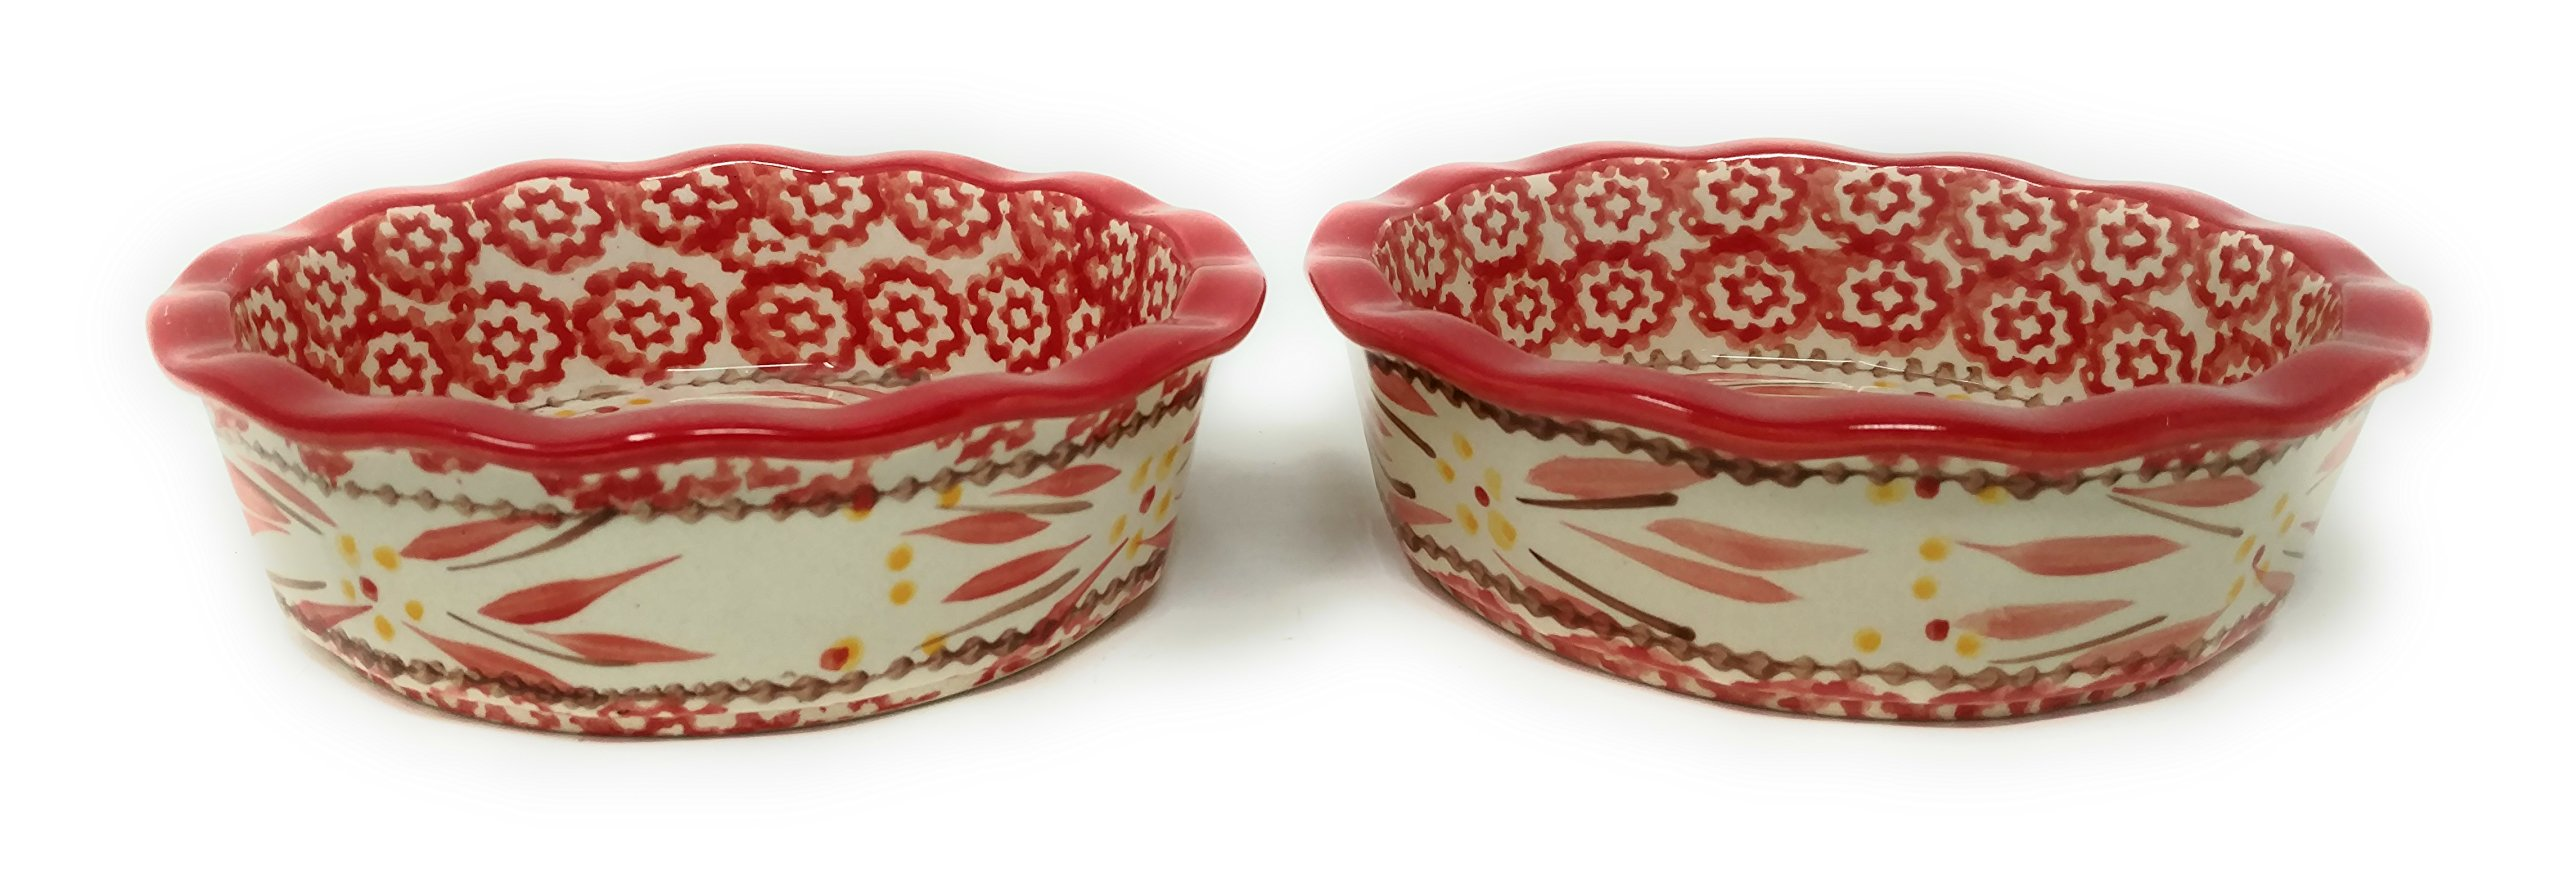 Temp-tations Set of 2 Mini Pie Pans, Deep Dish 5.75'' x 1.75'' each - Stoneware (Old World Red) by Temptations (Image #2)